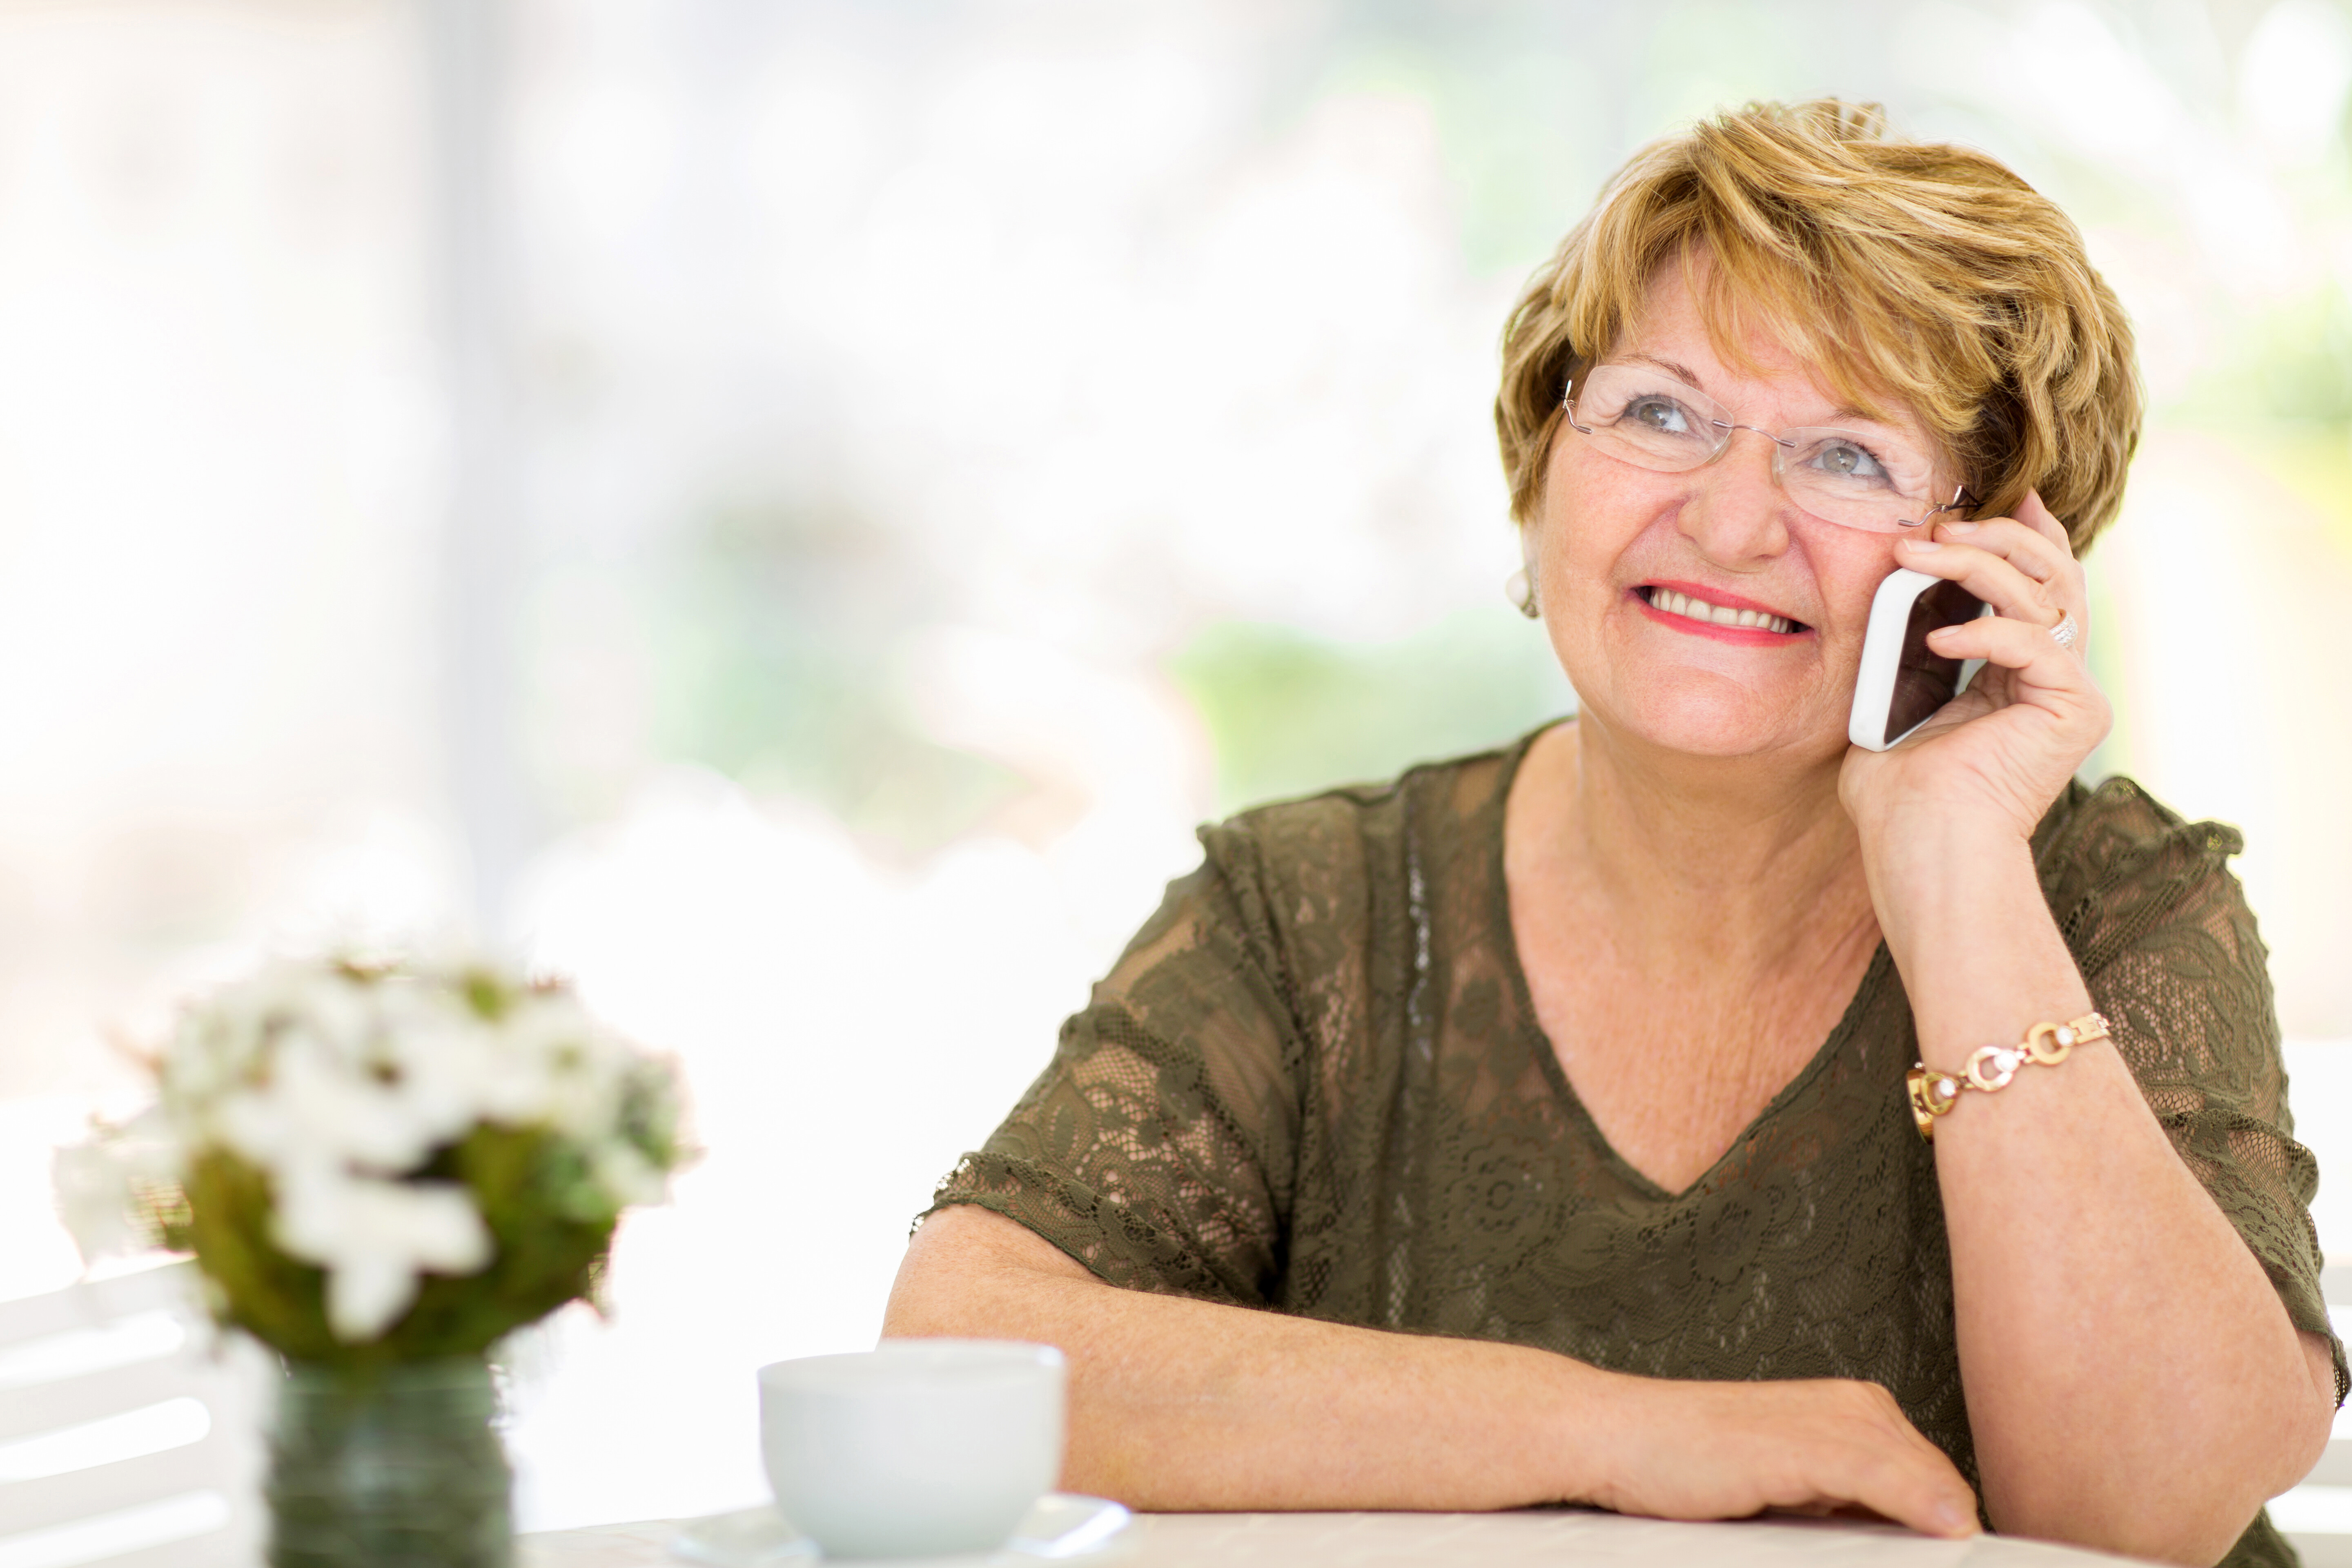 A closeup of a lady on a phone call with a cup of tea.